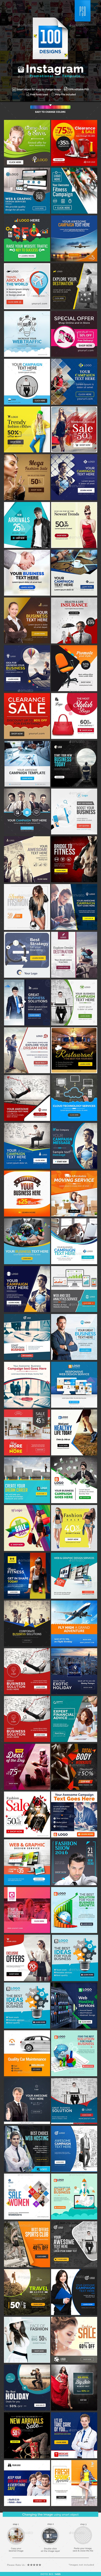 PSD Instagram Ad Templates - 100 Banners  • Only available here ➝ http://graphicriver.net/item/instagram-ad-templates-100-banners/16516789?ref=pxcr